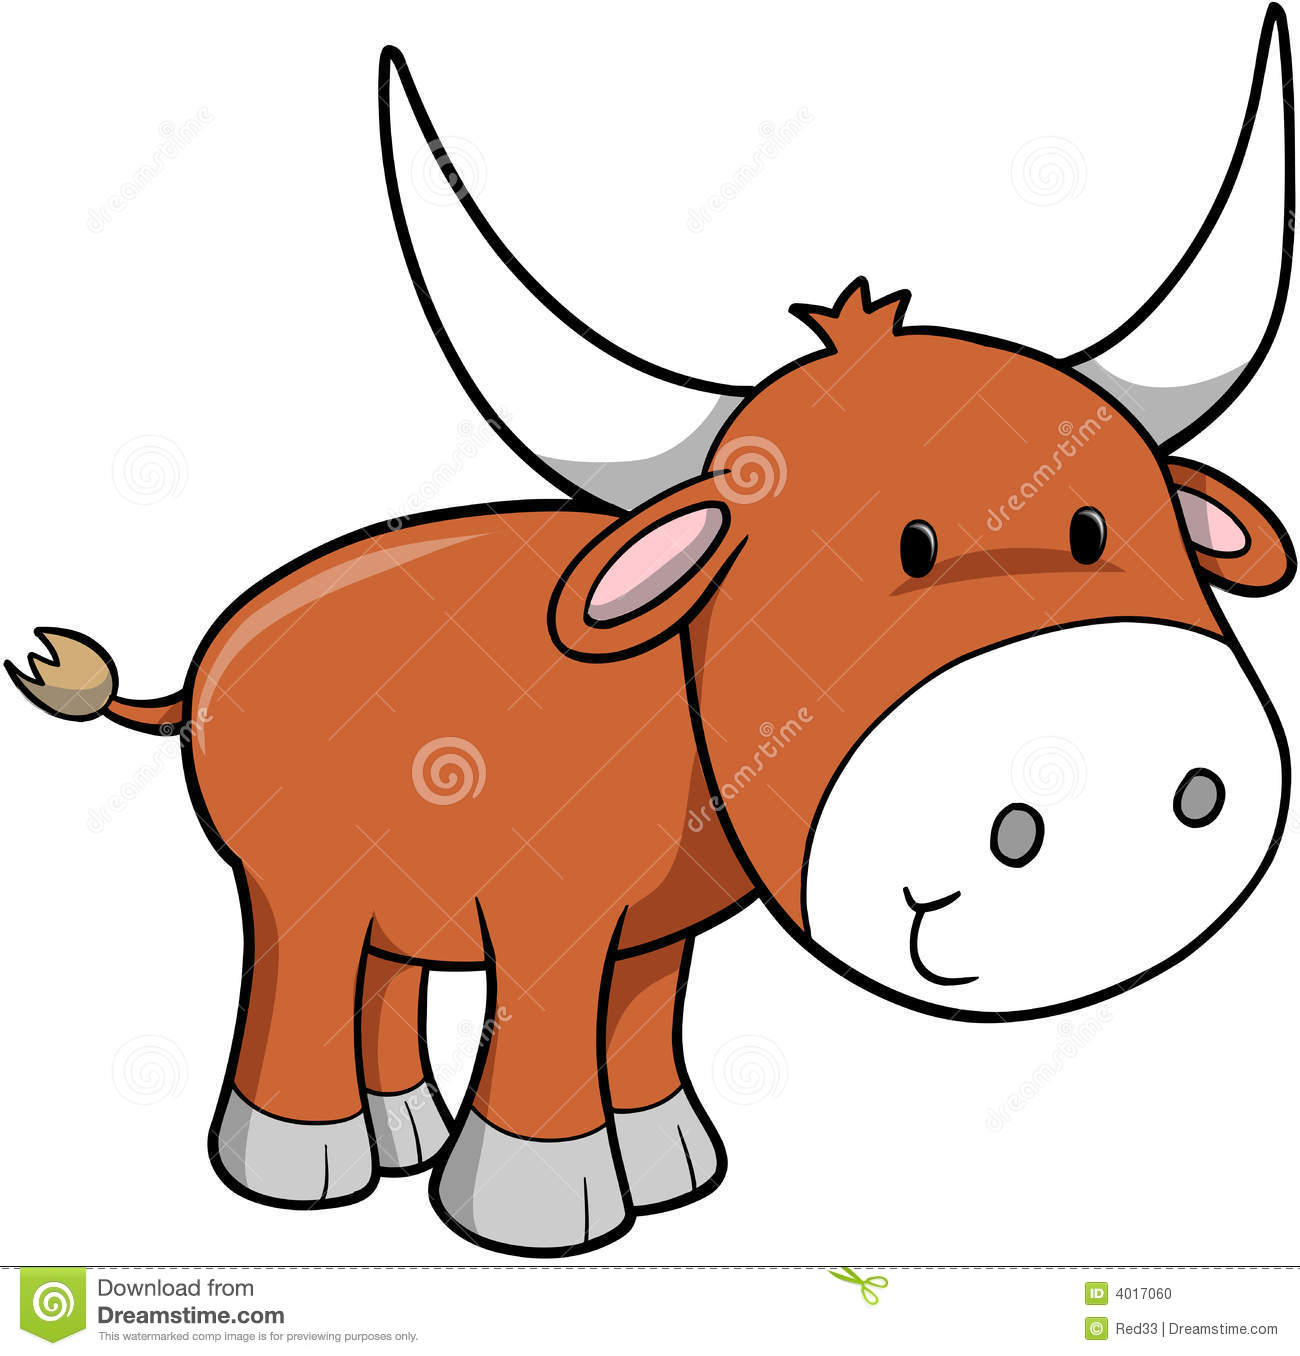 Ox Vector Illustration Stock Photo - Image: 4017060